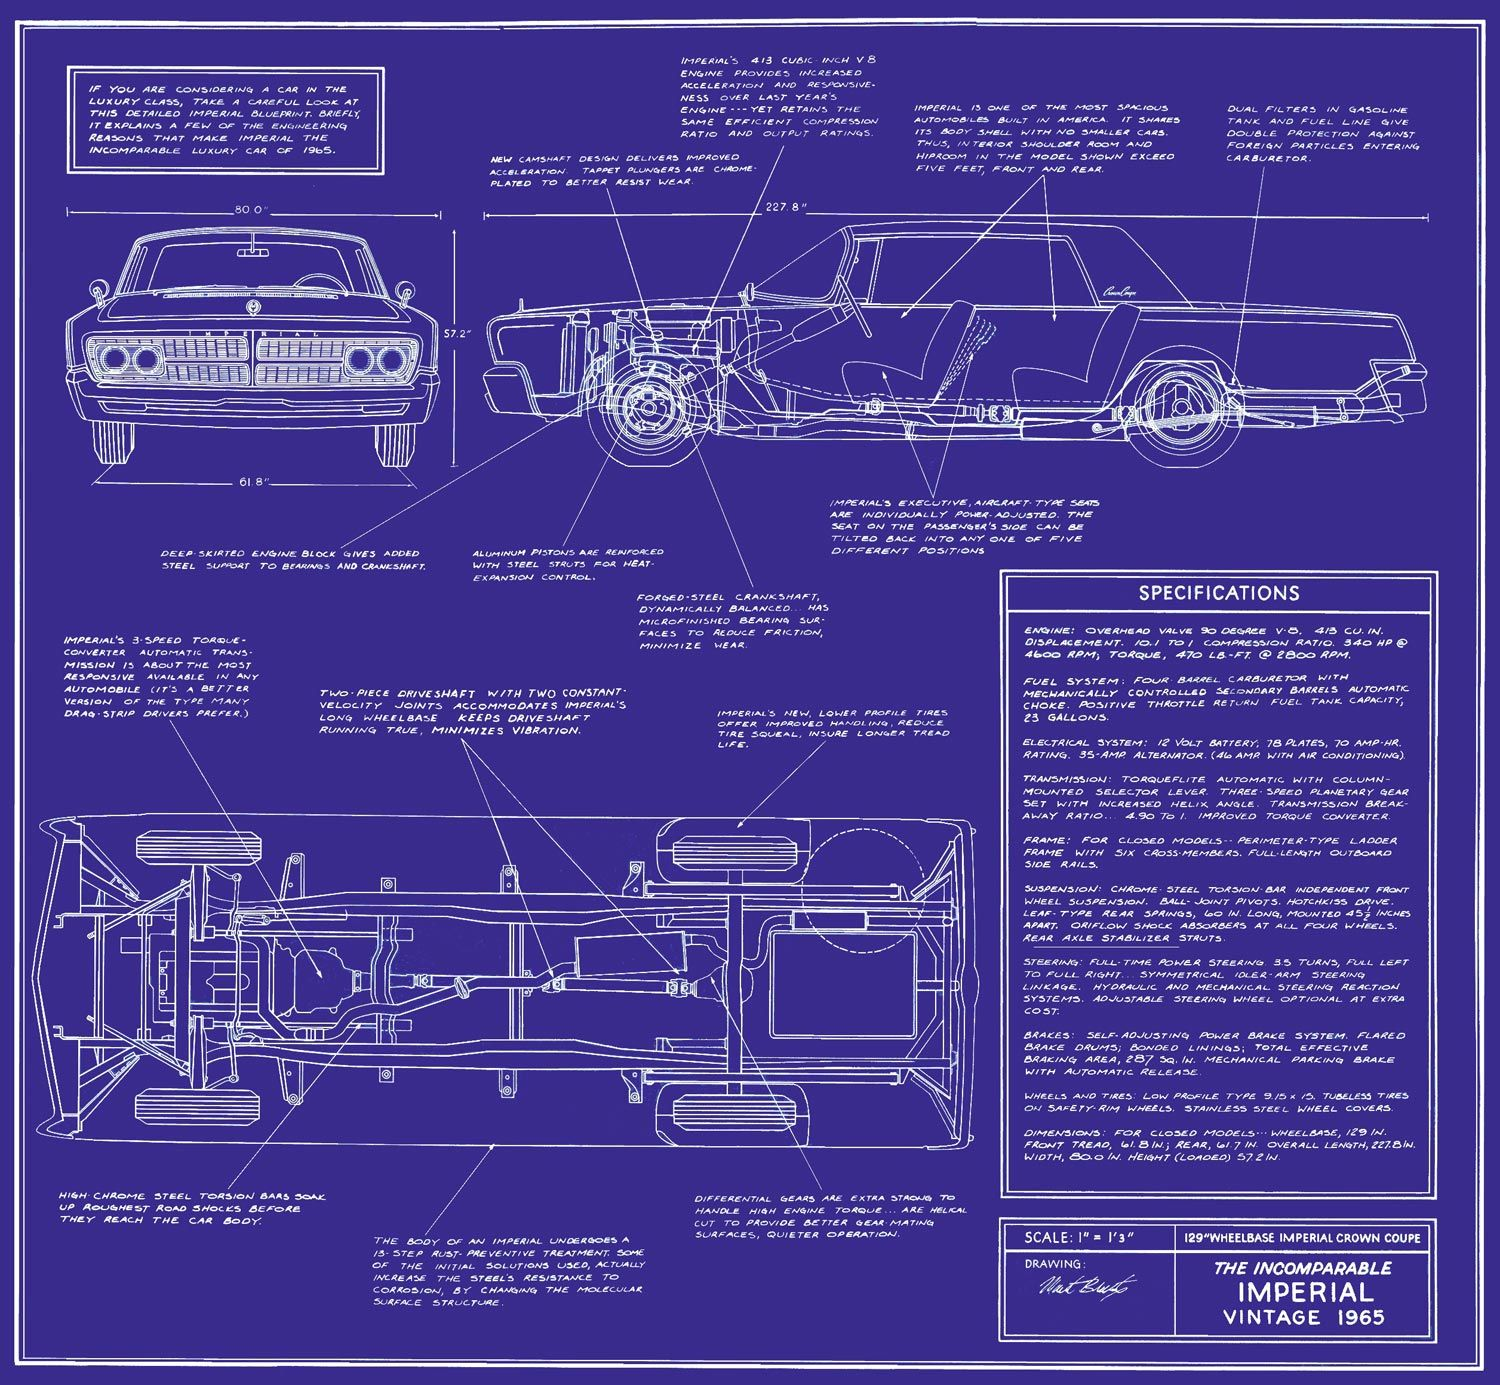 For technology, what's the difference between a blueprint and a diagram?